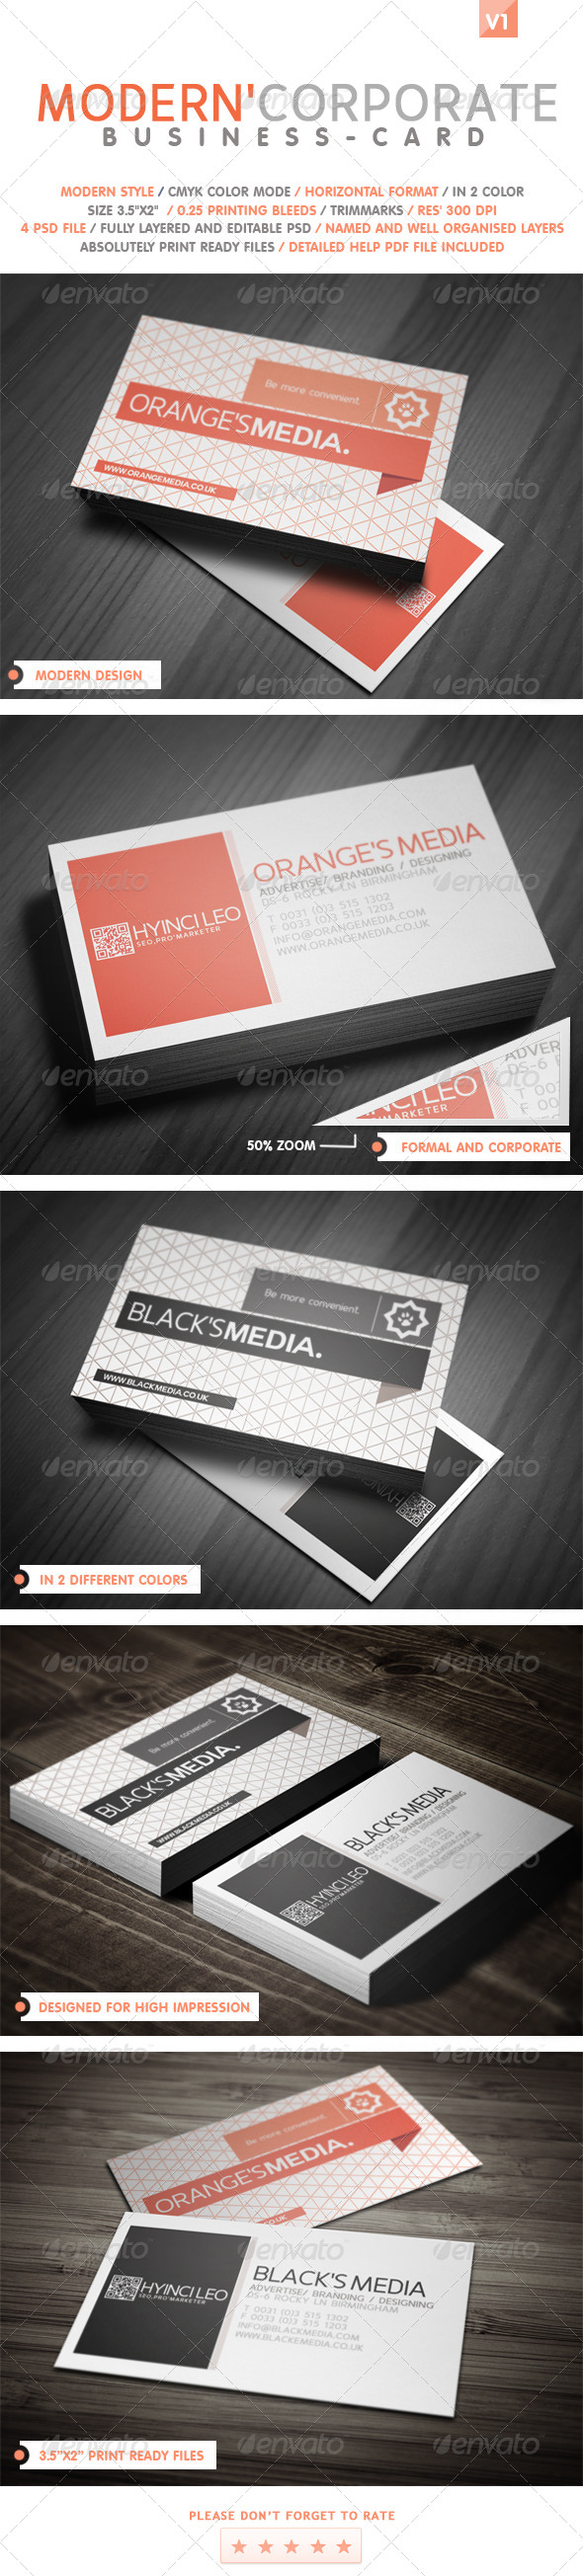 GraphicRiver Modern Corporate Business Card 4904254